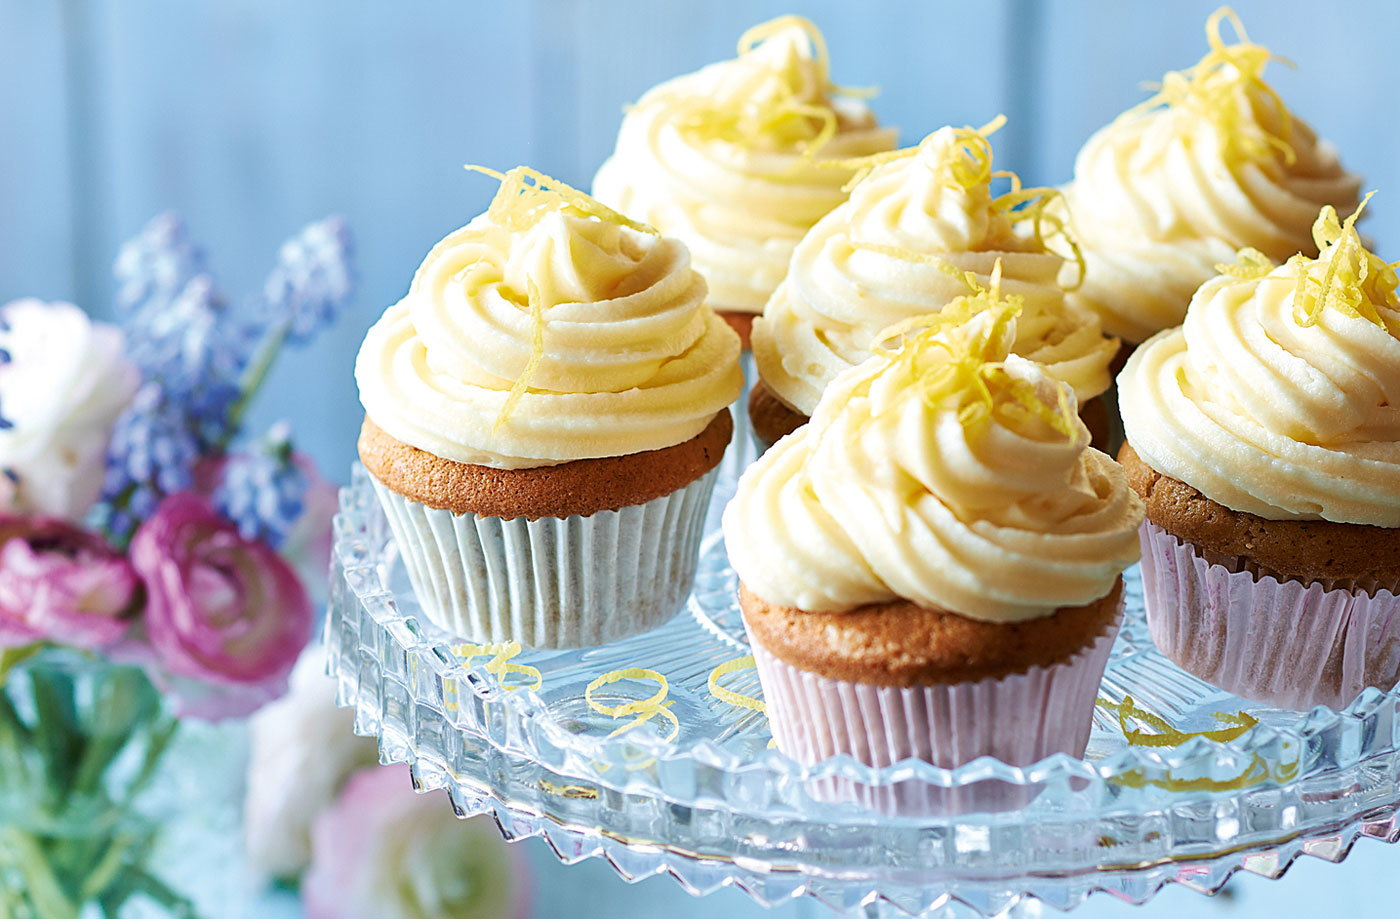 Earl Grey cupcakes with lemon icing